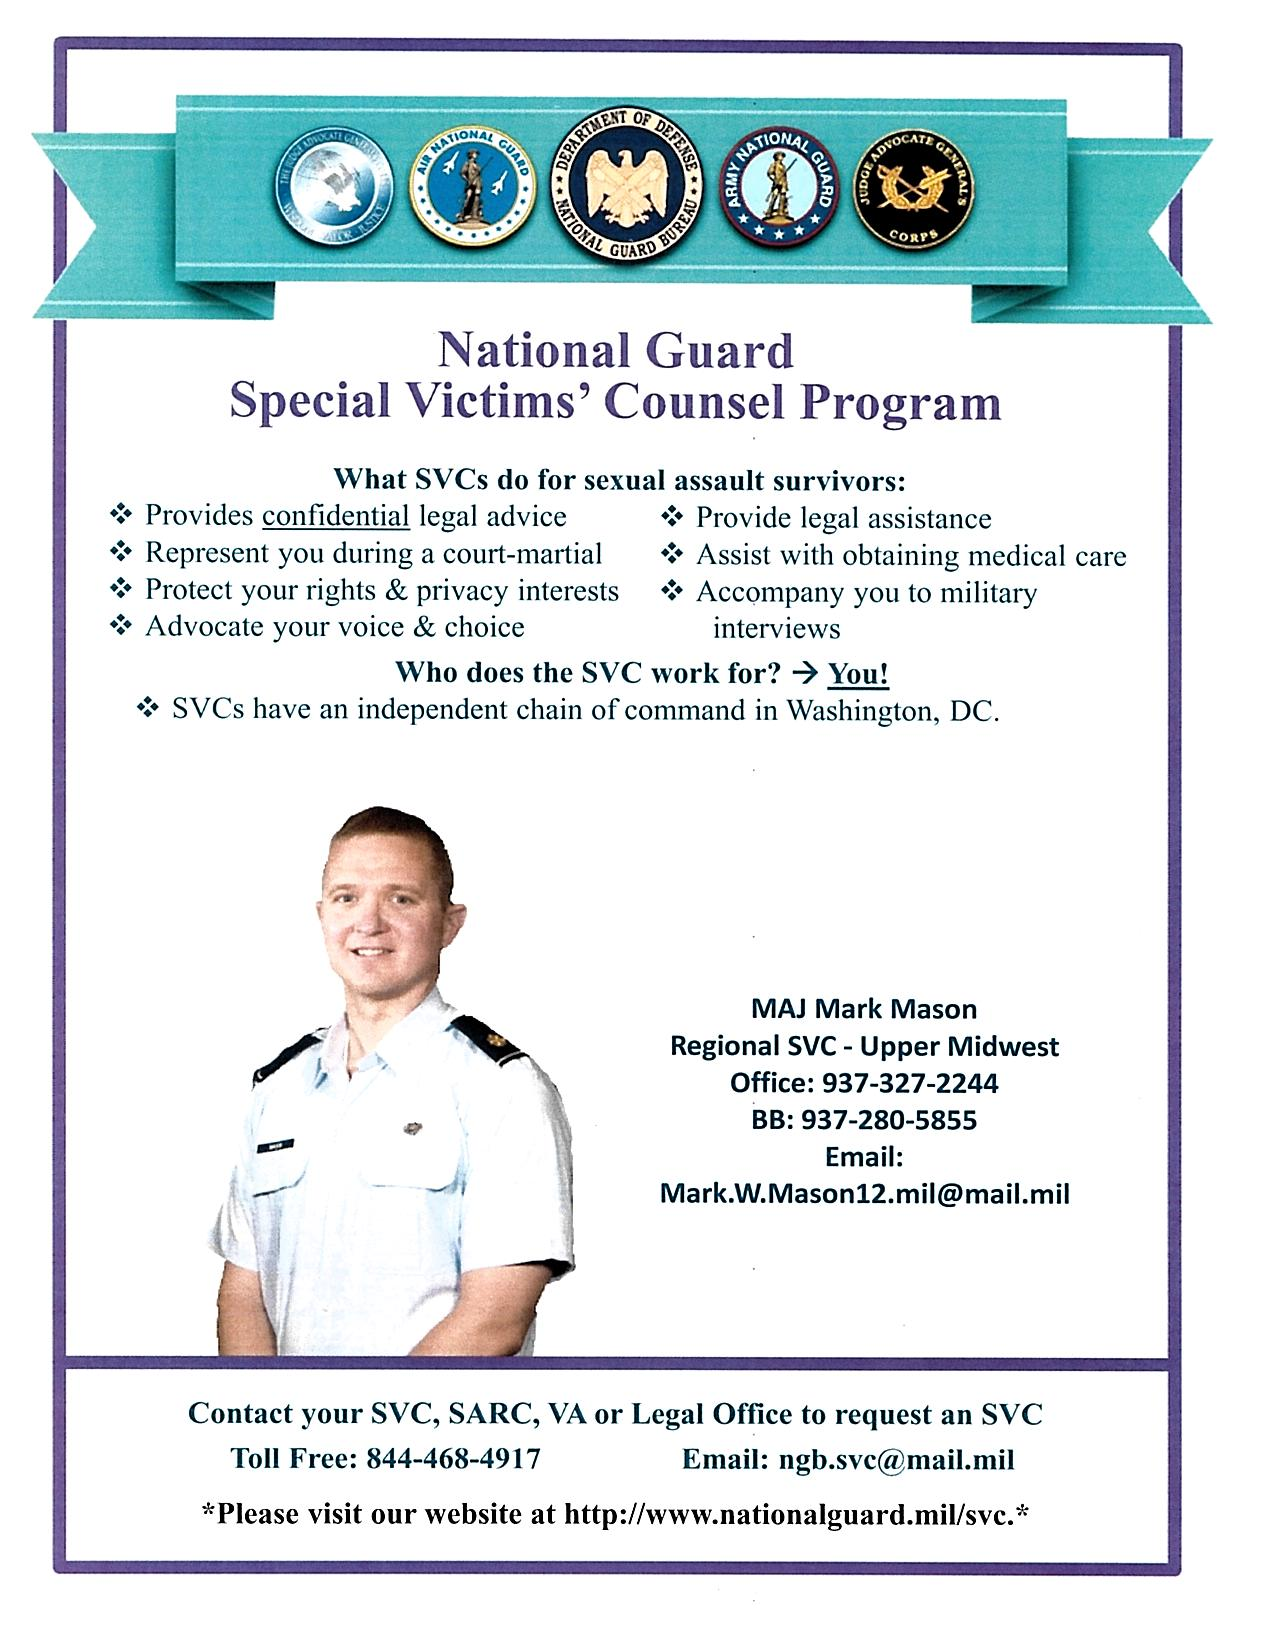 Graphic Image: National Guard Special Victim's Counsel Program. What SVCs do for sexual assault survivors: Provides confidential legal advice. Represent you during a court-martial. Protect your rights and privacy interests. Advocate your voice and choice. Provide legal assistance. Assist with obtaining medical care. Accompany you to military interviews. Who does the SVC work for? You! SVCs have an independent chain of command in Washington, DC. Contact your SVC, SARC, VA or Legal Office to request an SVC; toll free 844-468-4917, email: ngb.svc@mail.mil  Please visit our website at http://www.nationalguard.mil/svc.